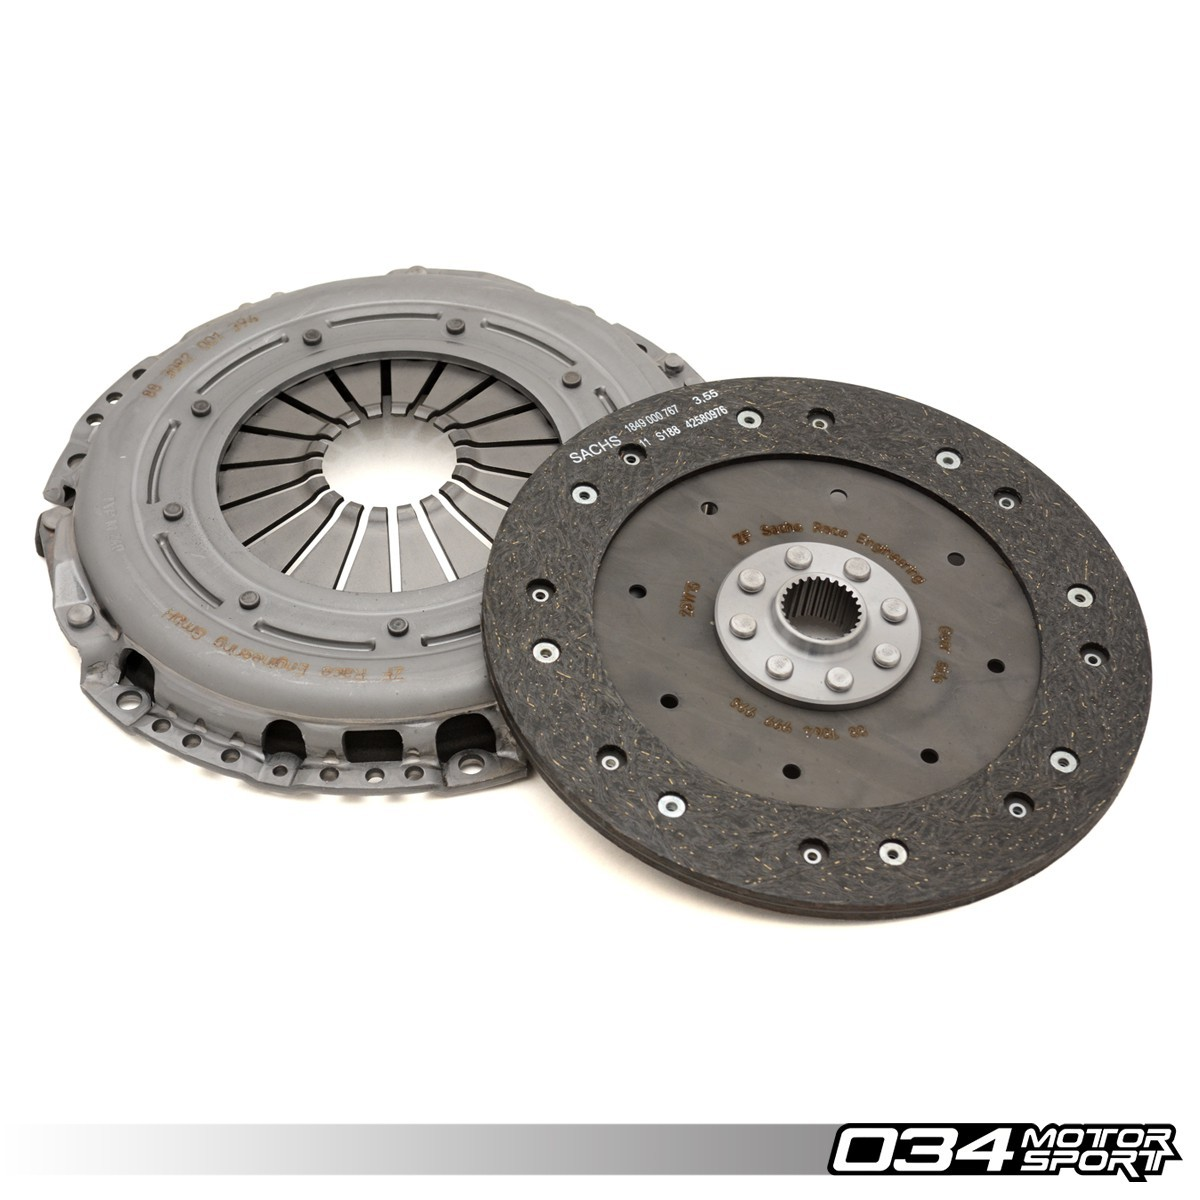 Sachs Performance Clutch Kit for MkV/MkVI/MkVII Volkswagen GTI 2.0 TSI & 2.0T Gen 3 | SPC-001422.999502